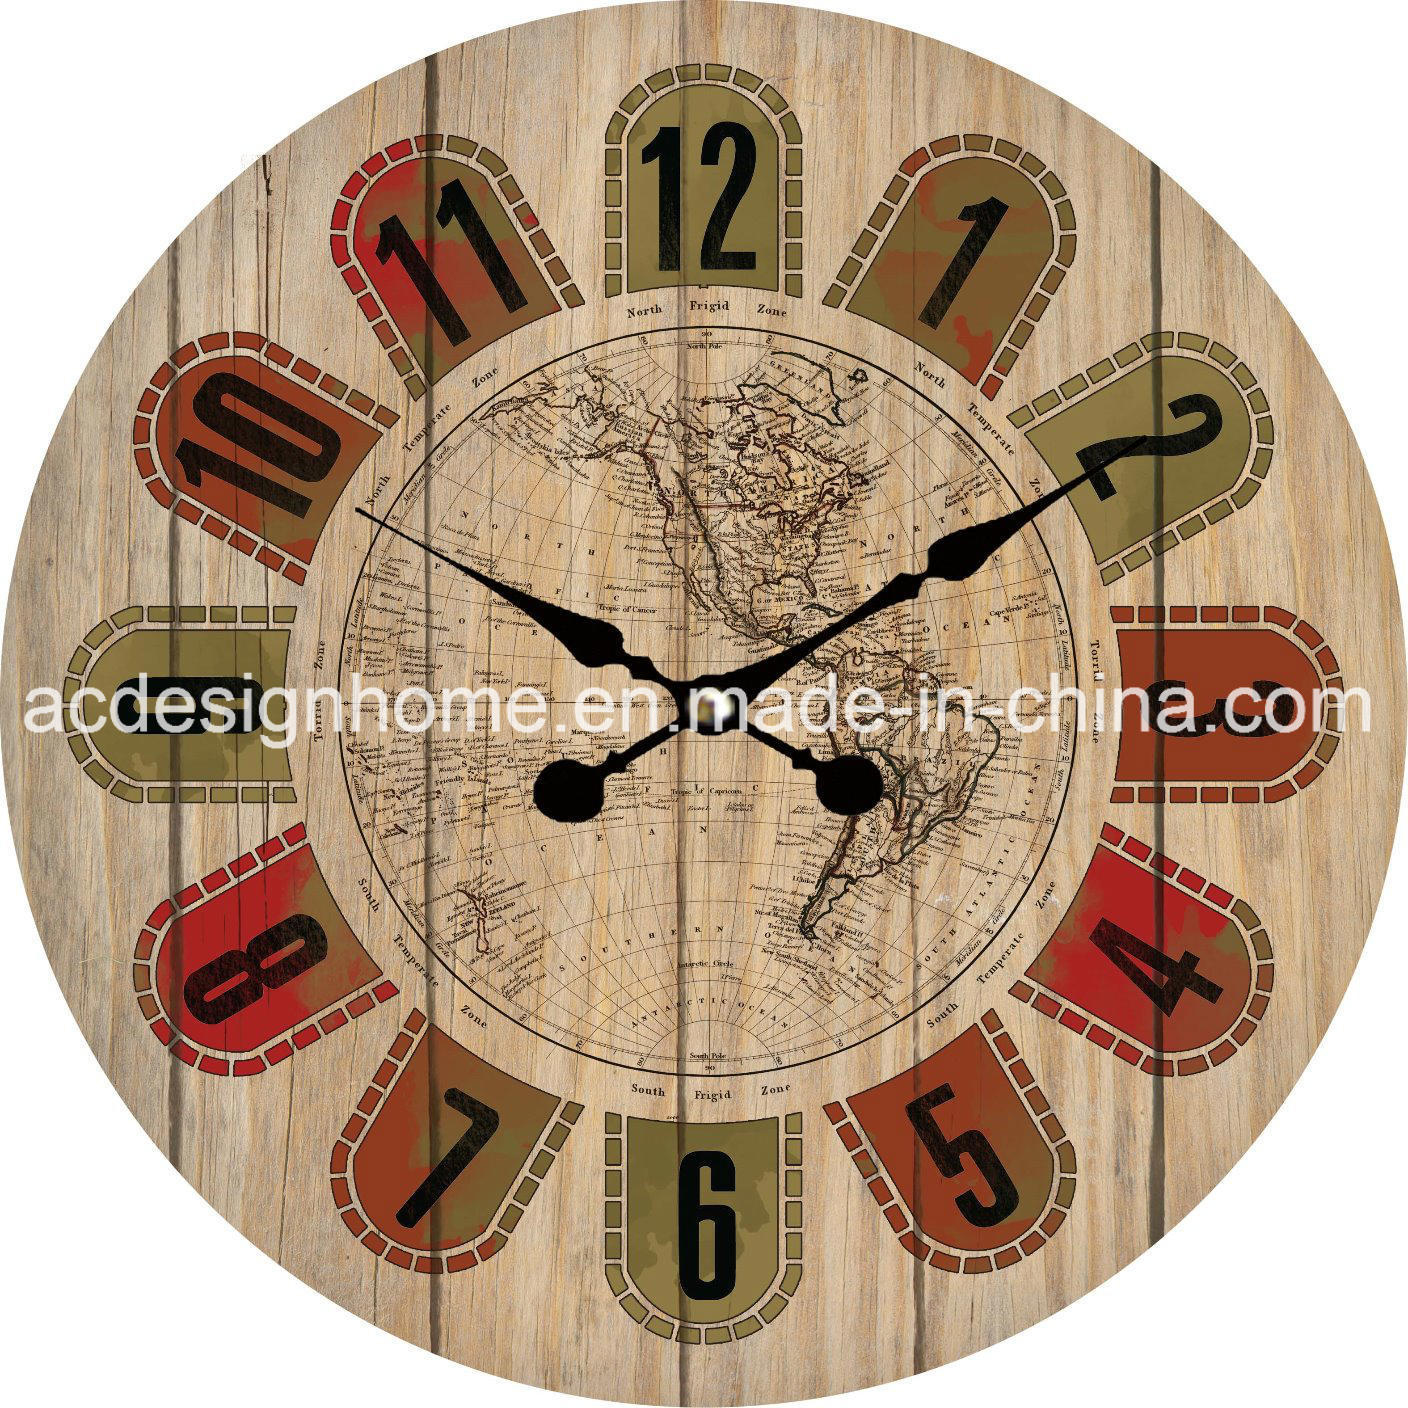 China best price world map design mdf wooden wall clock for interior china best price world map design mdf wooden wall clock for interior and home decor china hot selling mdf wall clock decorative wall clock gumiabroncs Image collections